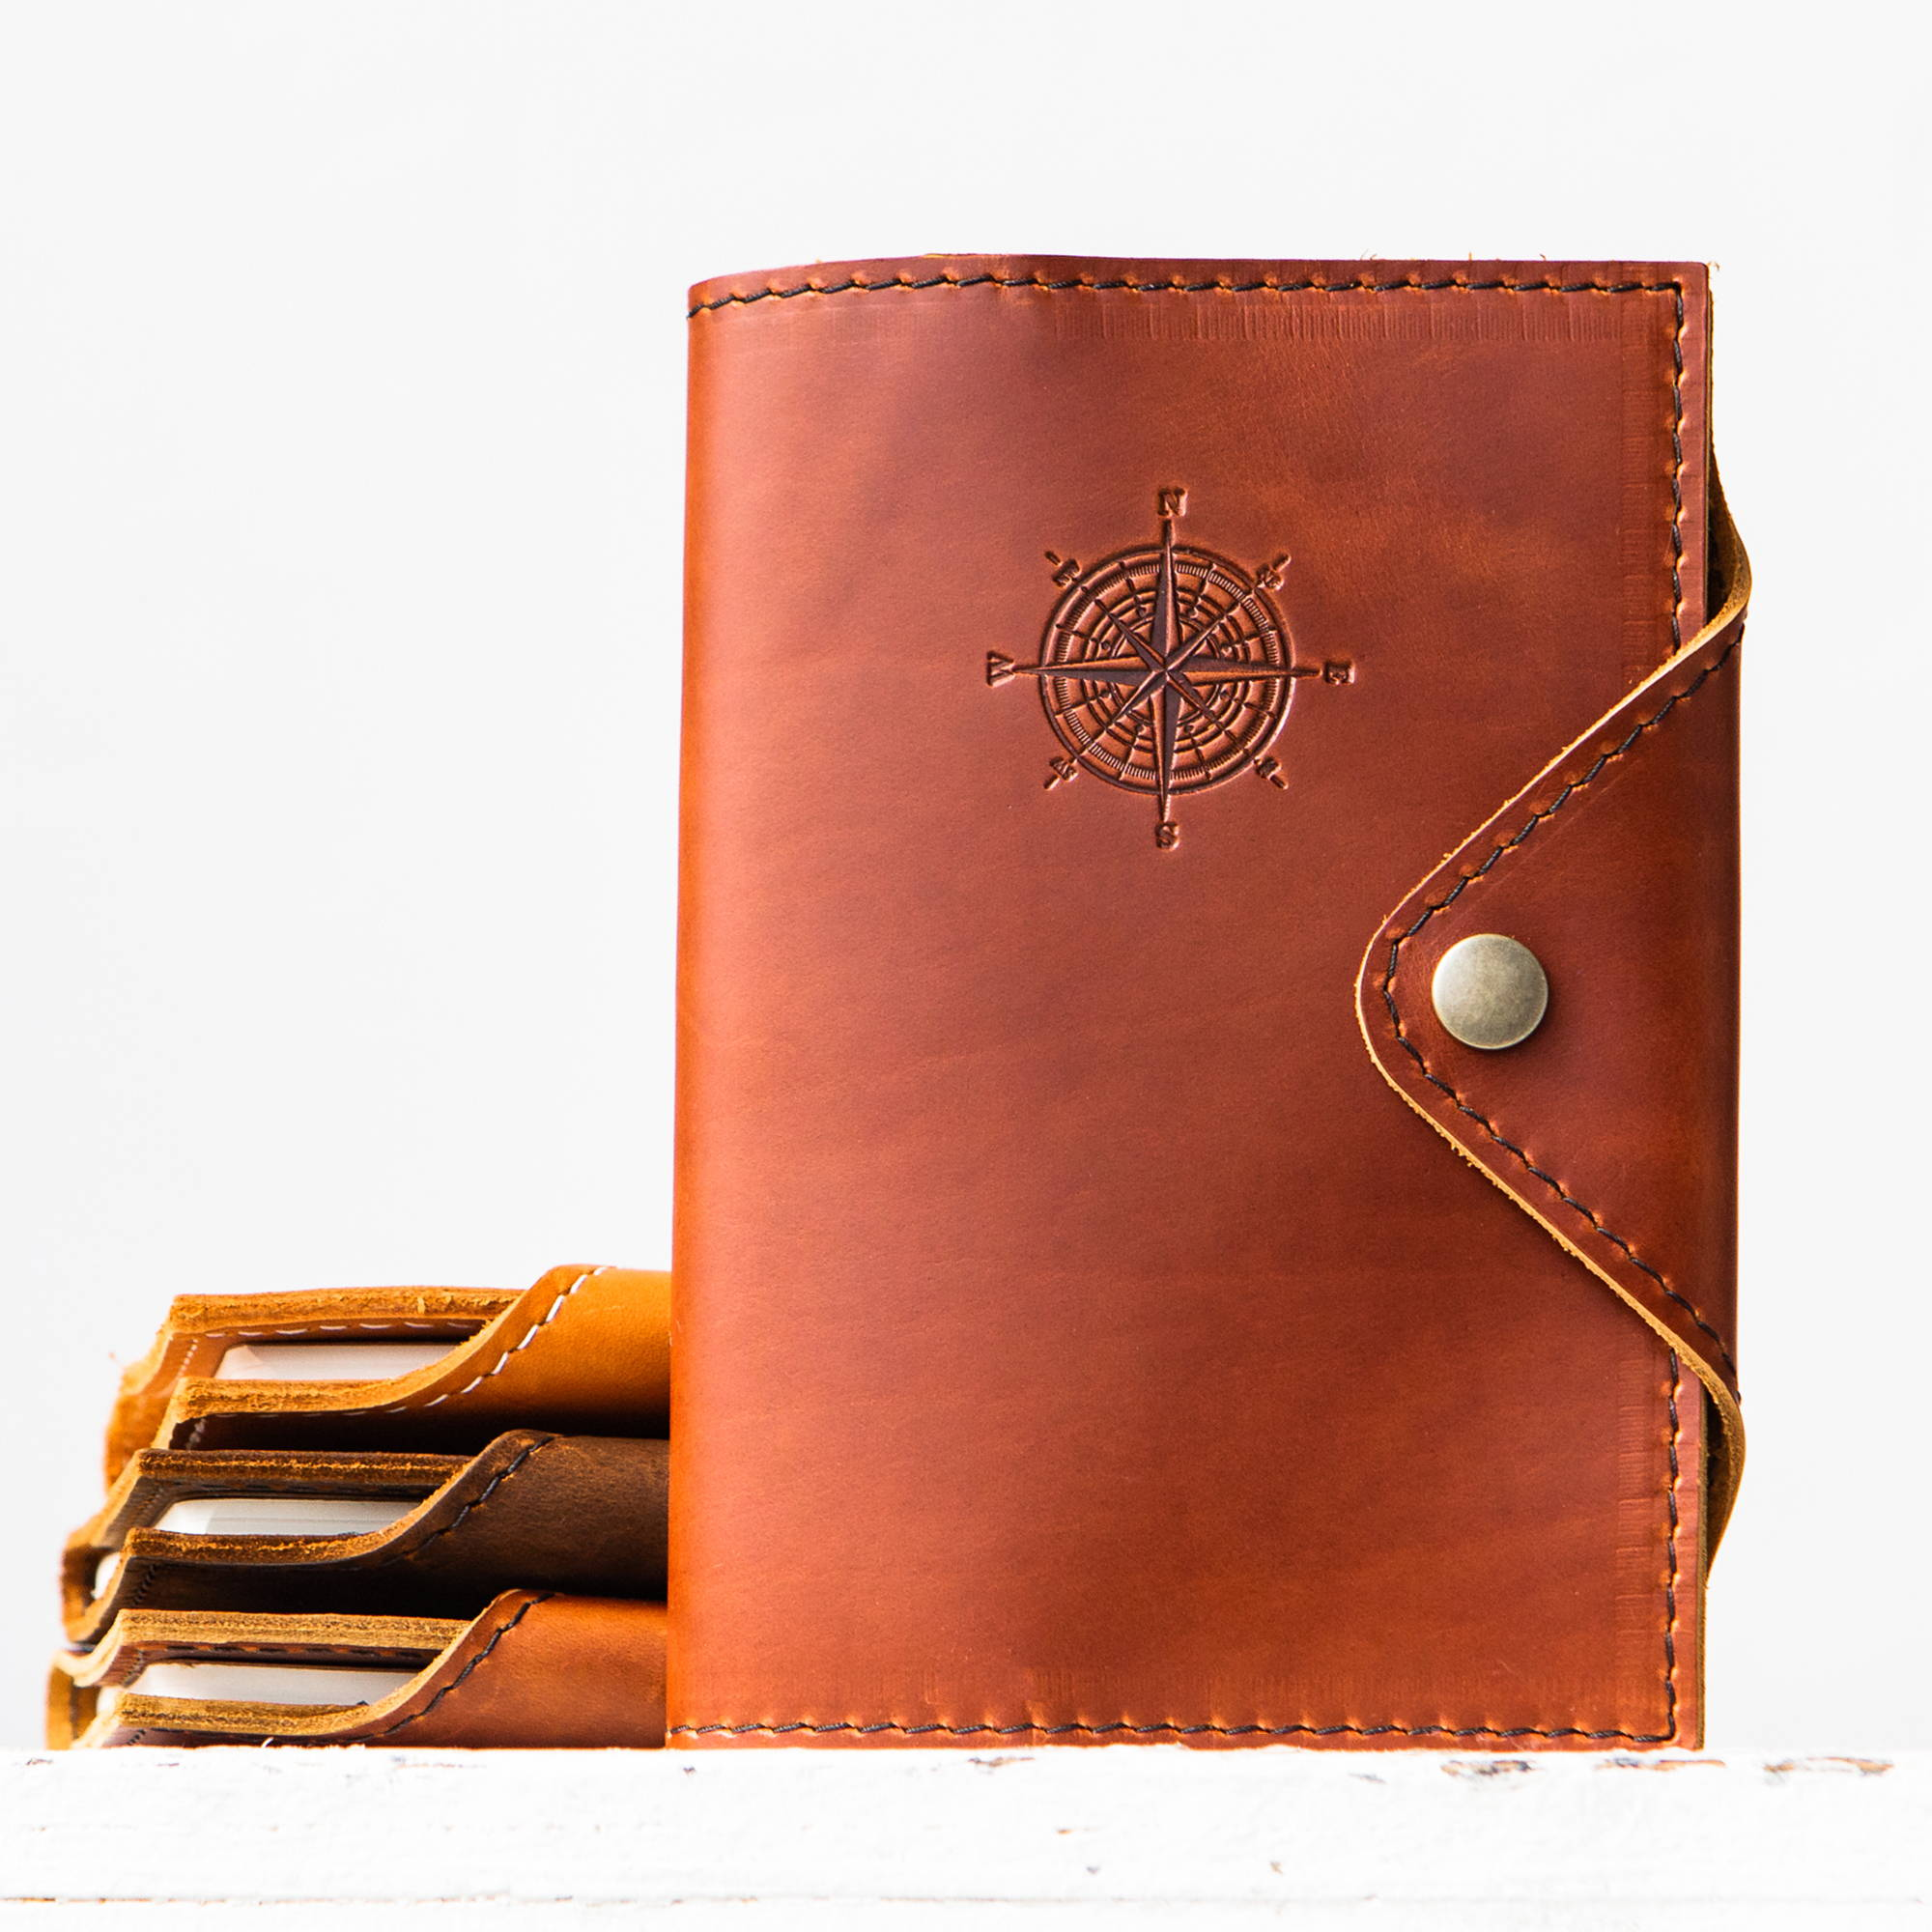 handmade leather journal covers branded with a compass rose